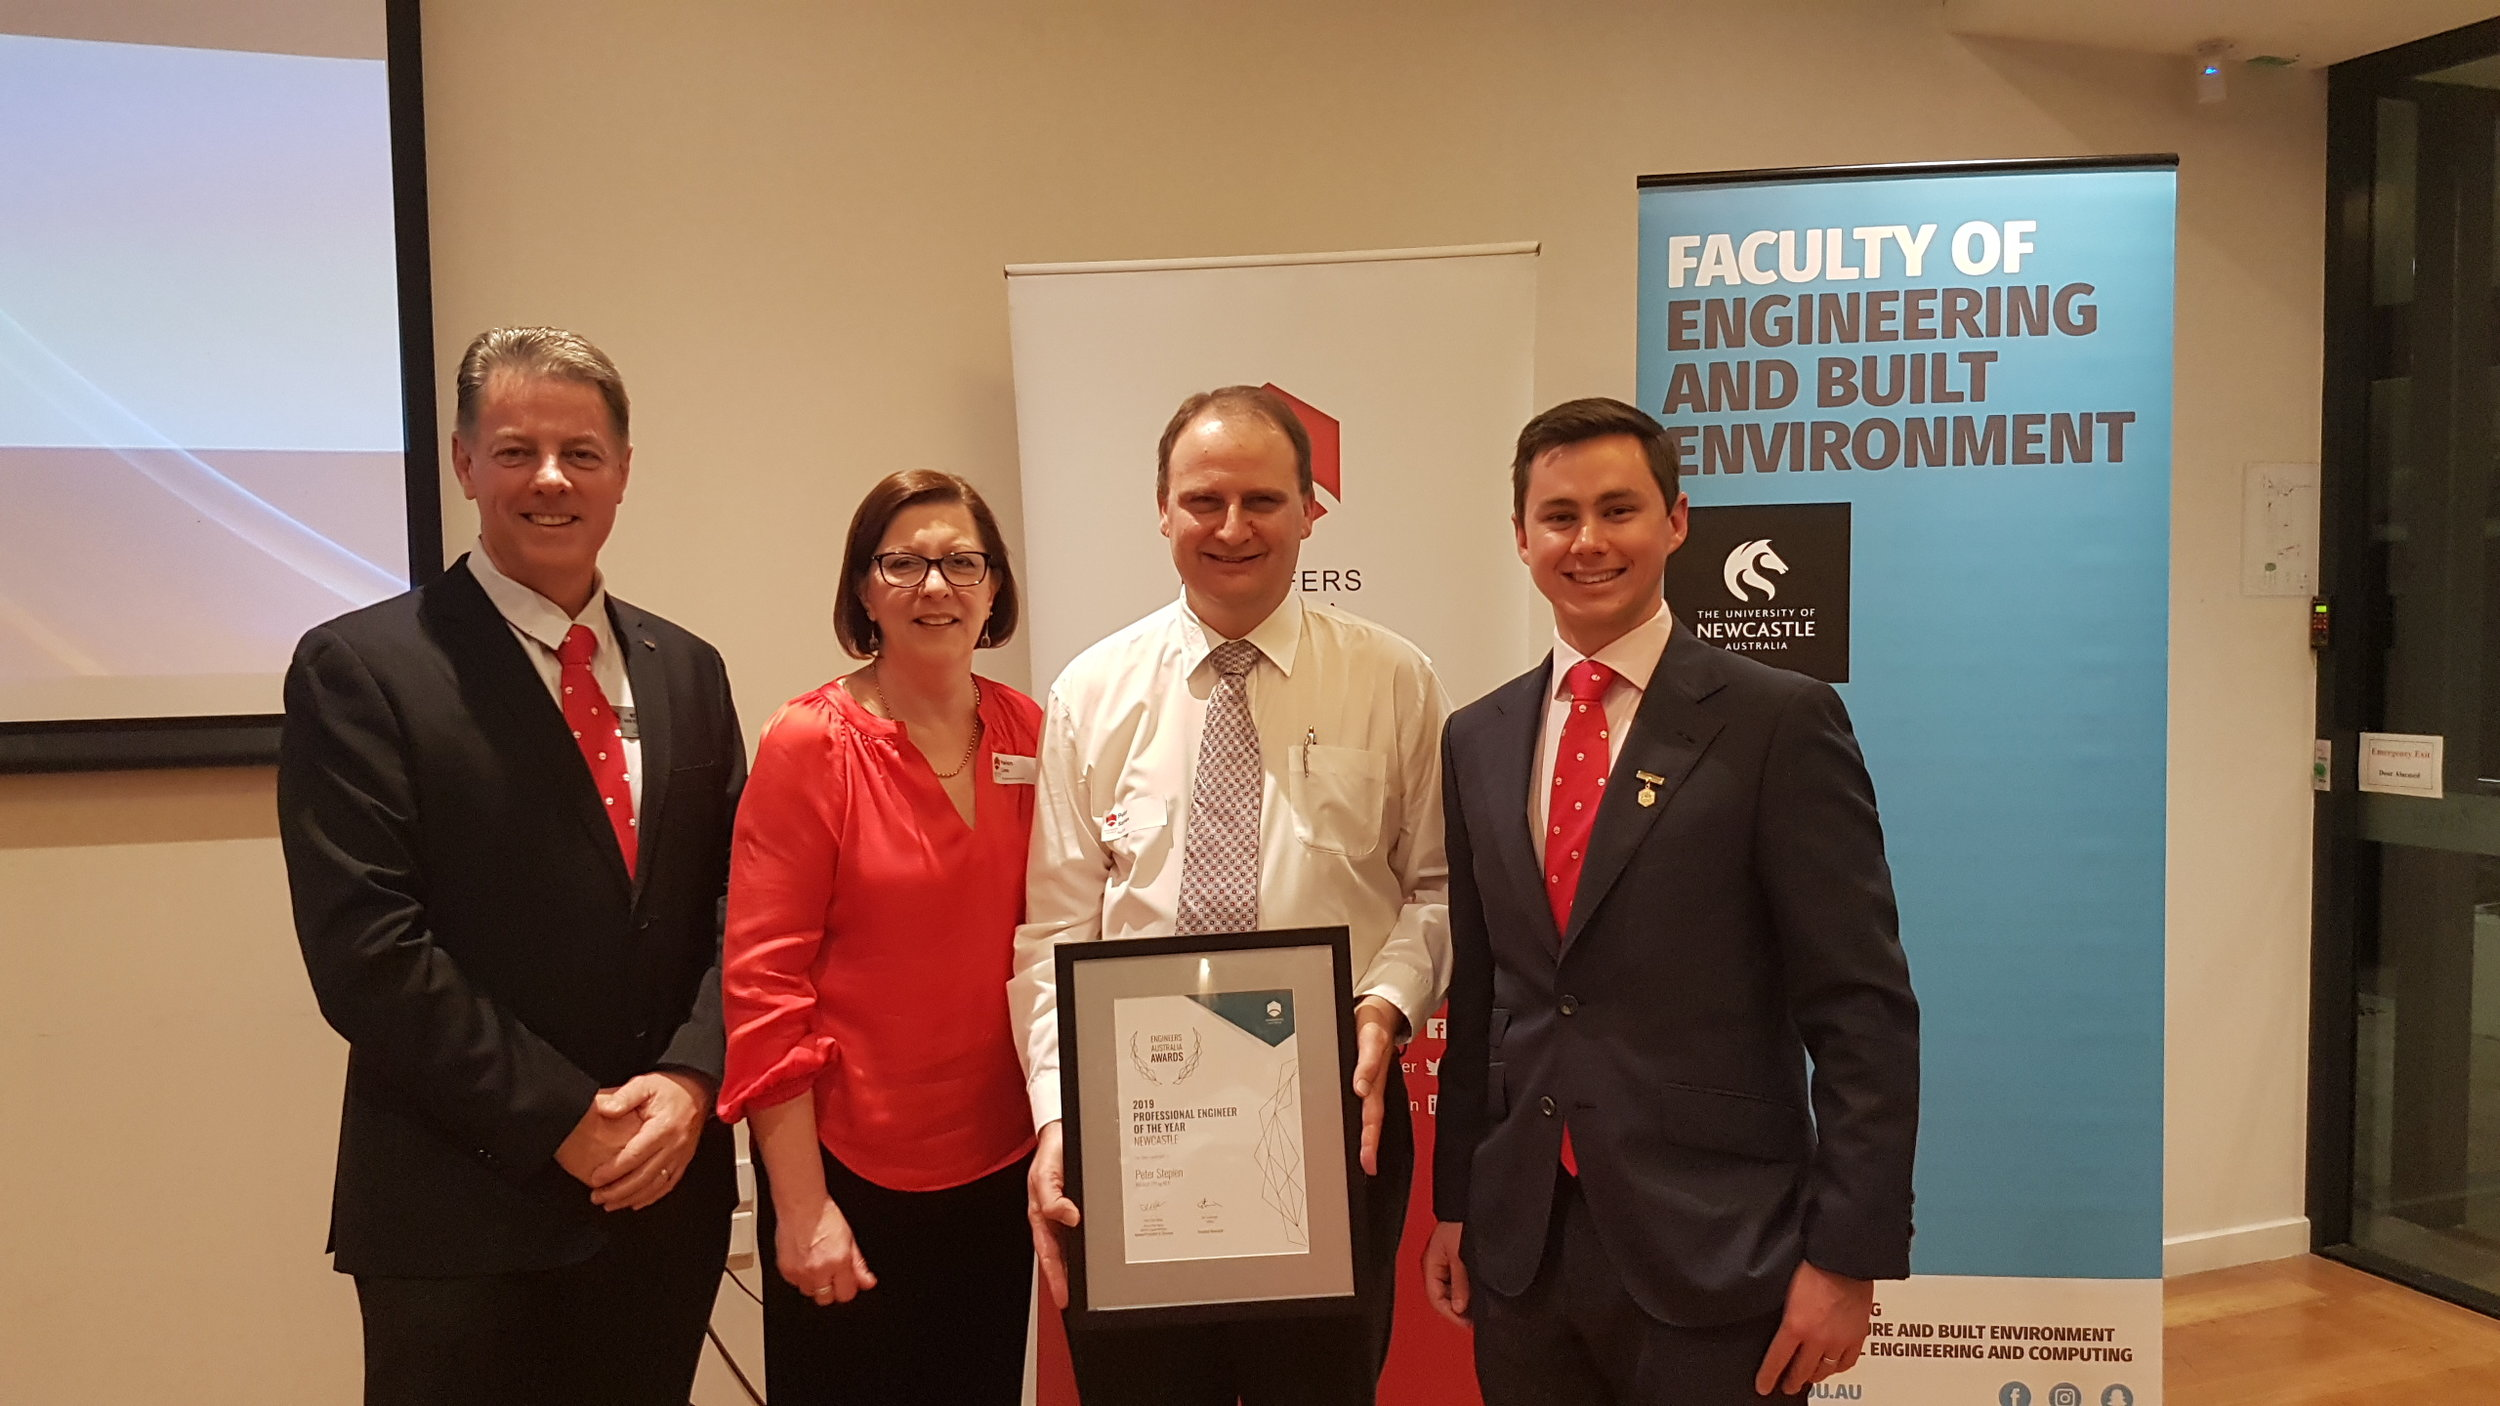 (L-R) -Michael van Koeverden, Director CQT Services, Helen Link, General Manager - Newcastle Engineers Australia, Peter Stepien - ResTech, Joe Townsend, 2019 Division President